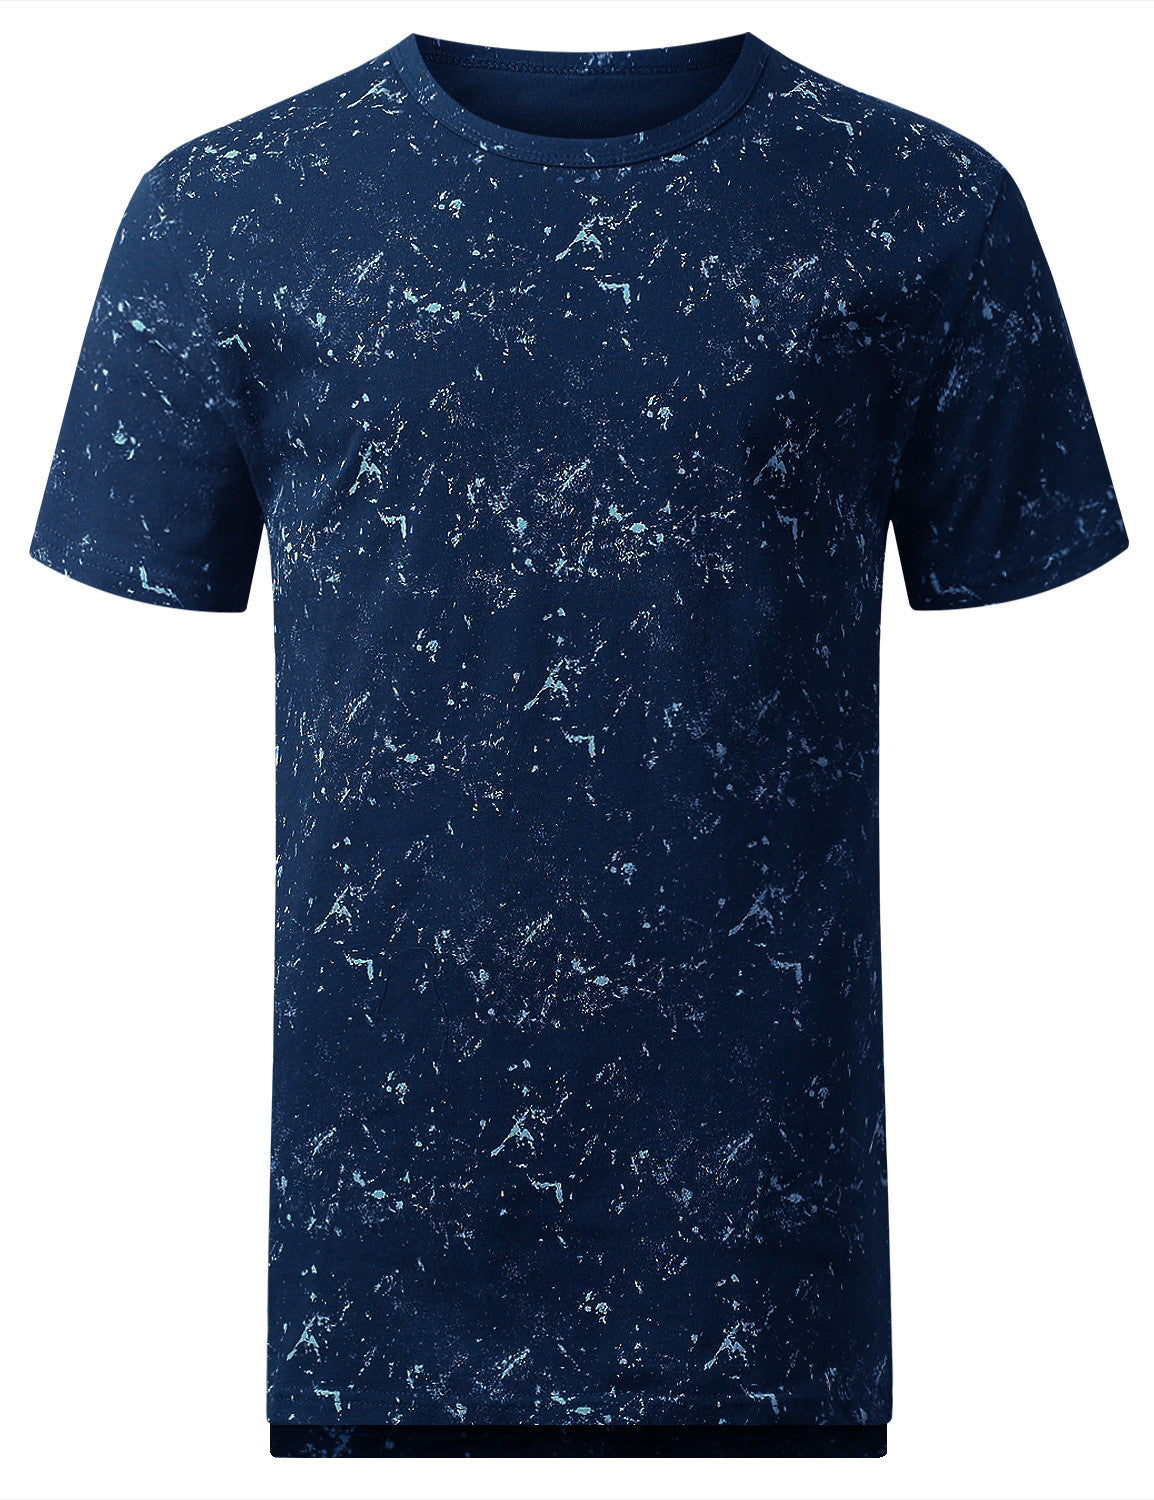 BLUE Tied Wash Longline T-shirt - URBANCREWS